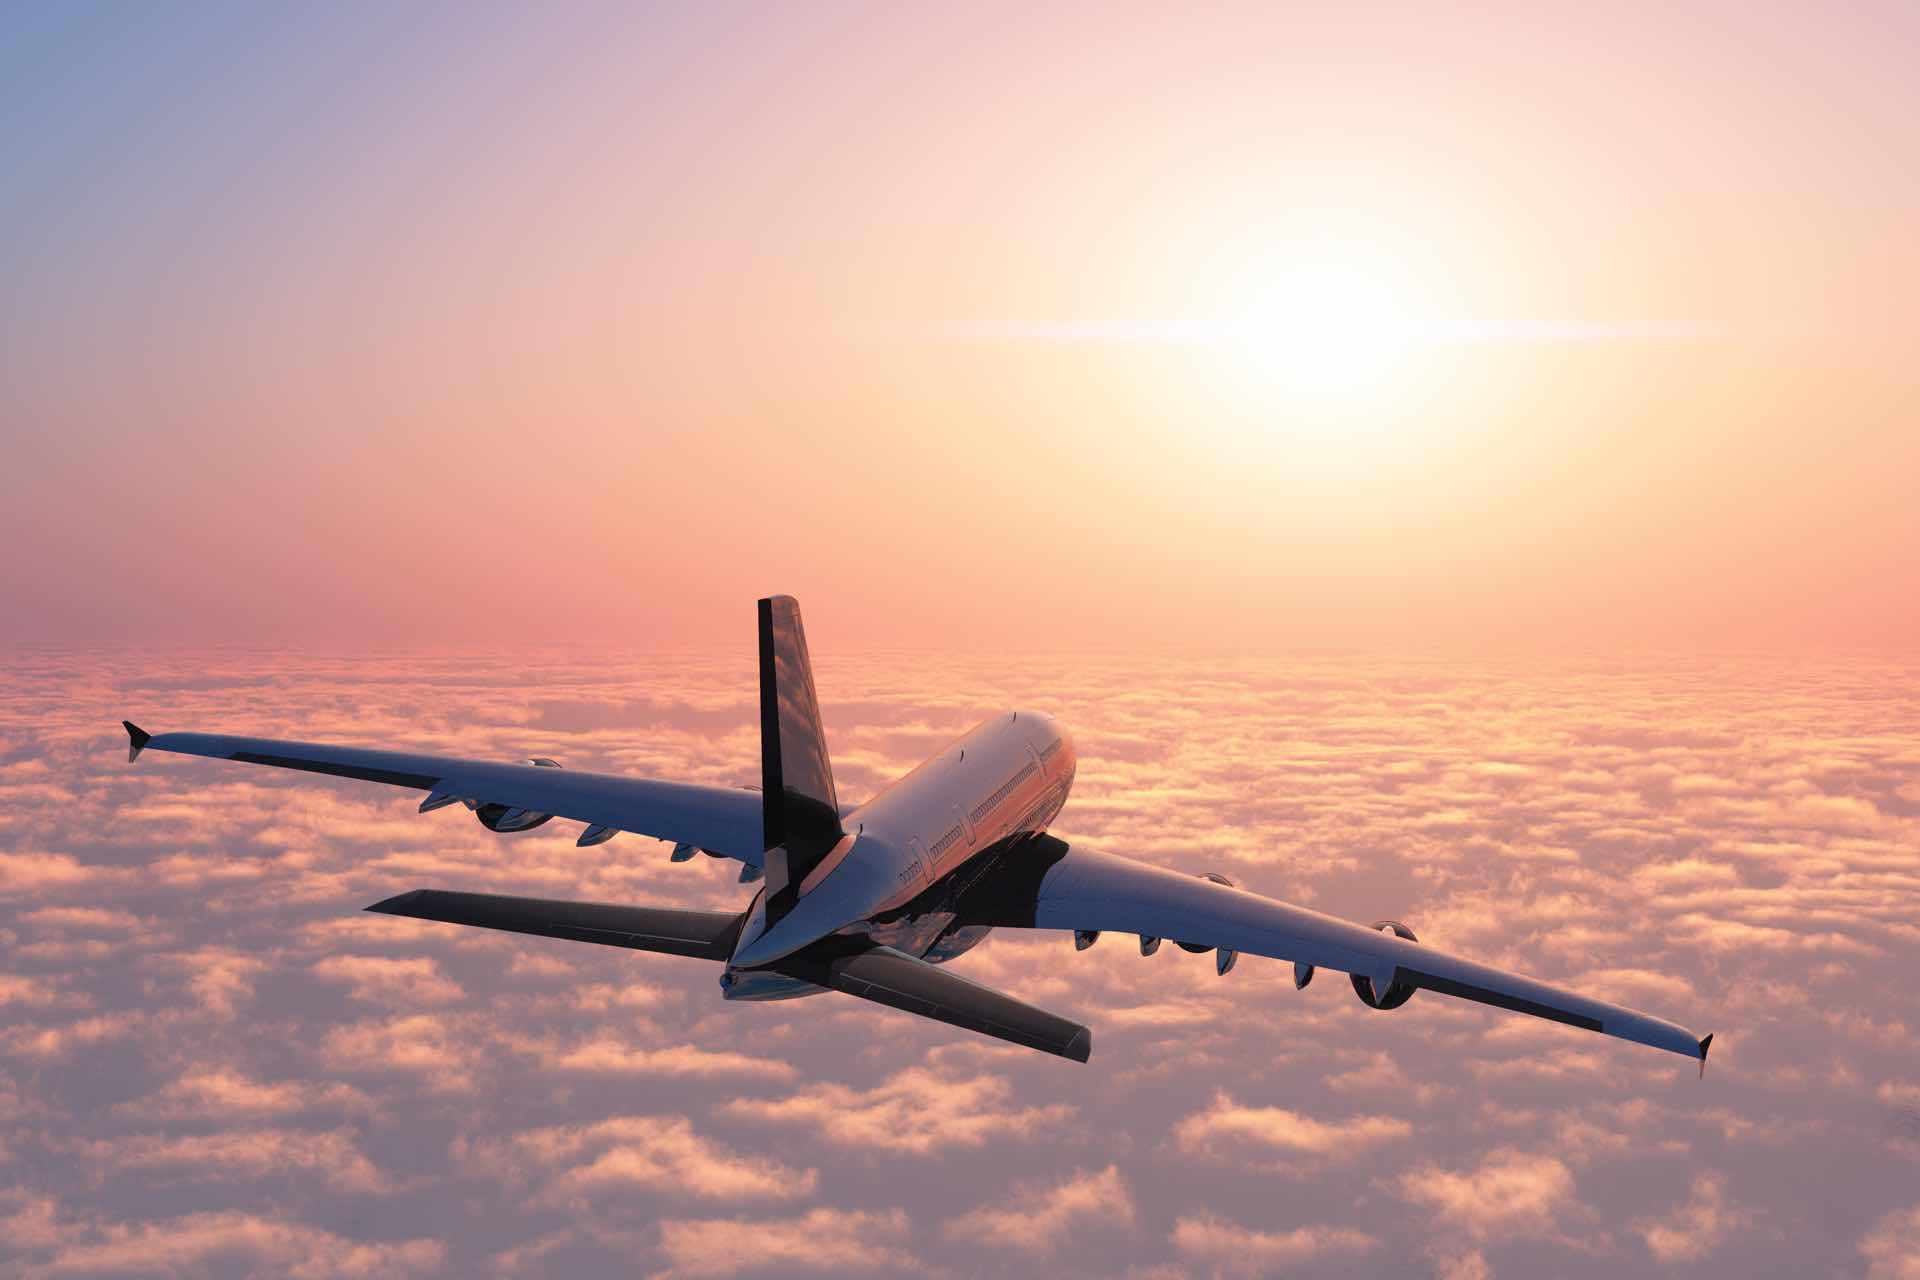 Air Rage - Violence in the Airline Industry